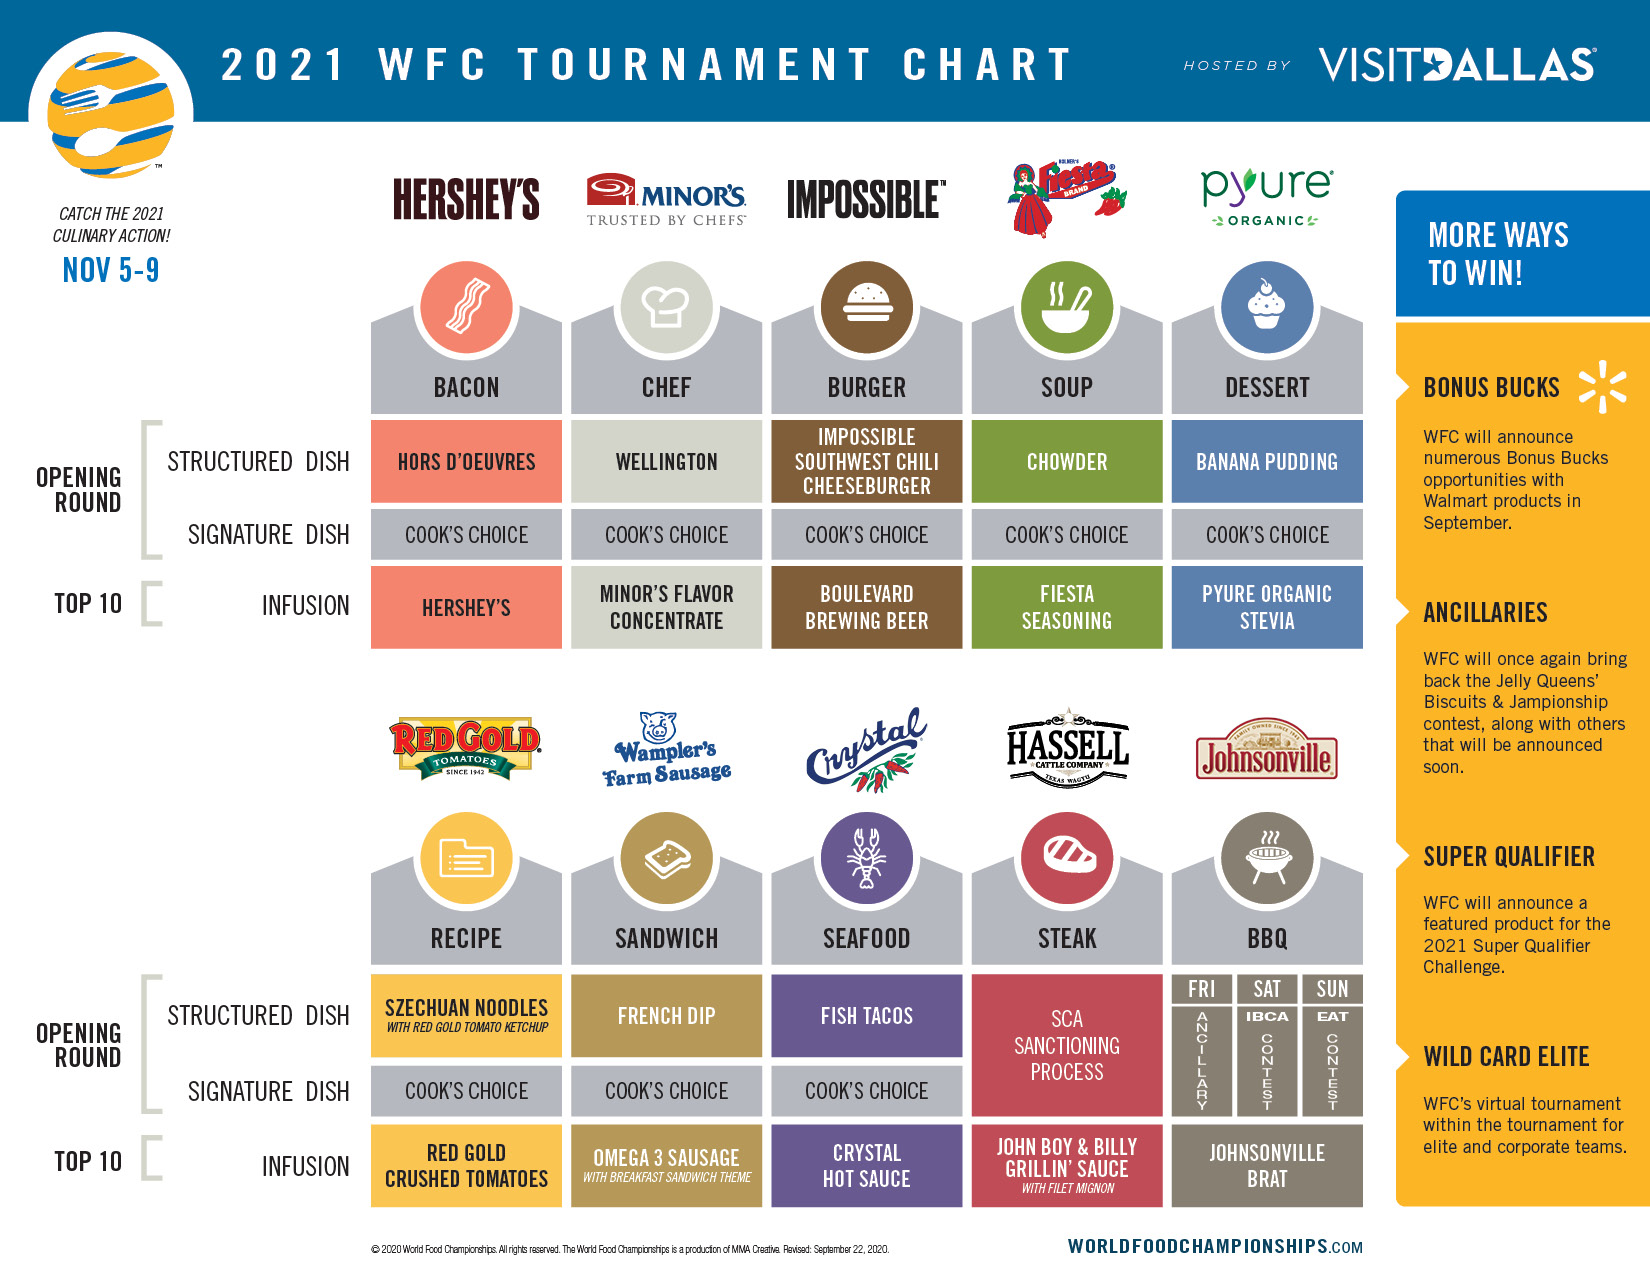 2021 Tournament Chart -- 2021-wfc-tournament-chart-0922-v1a.jpg